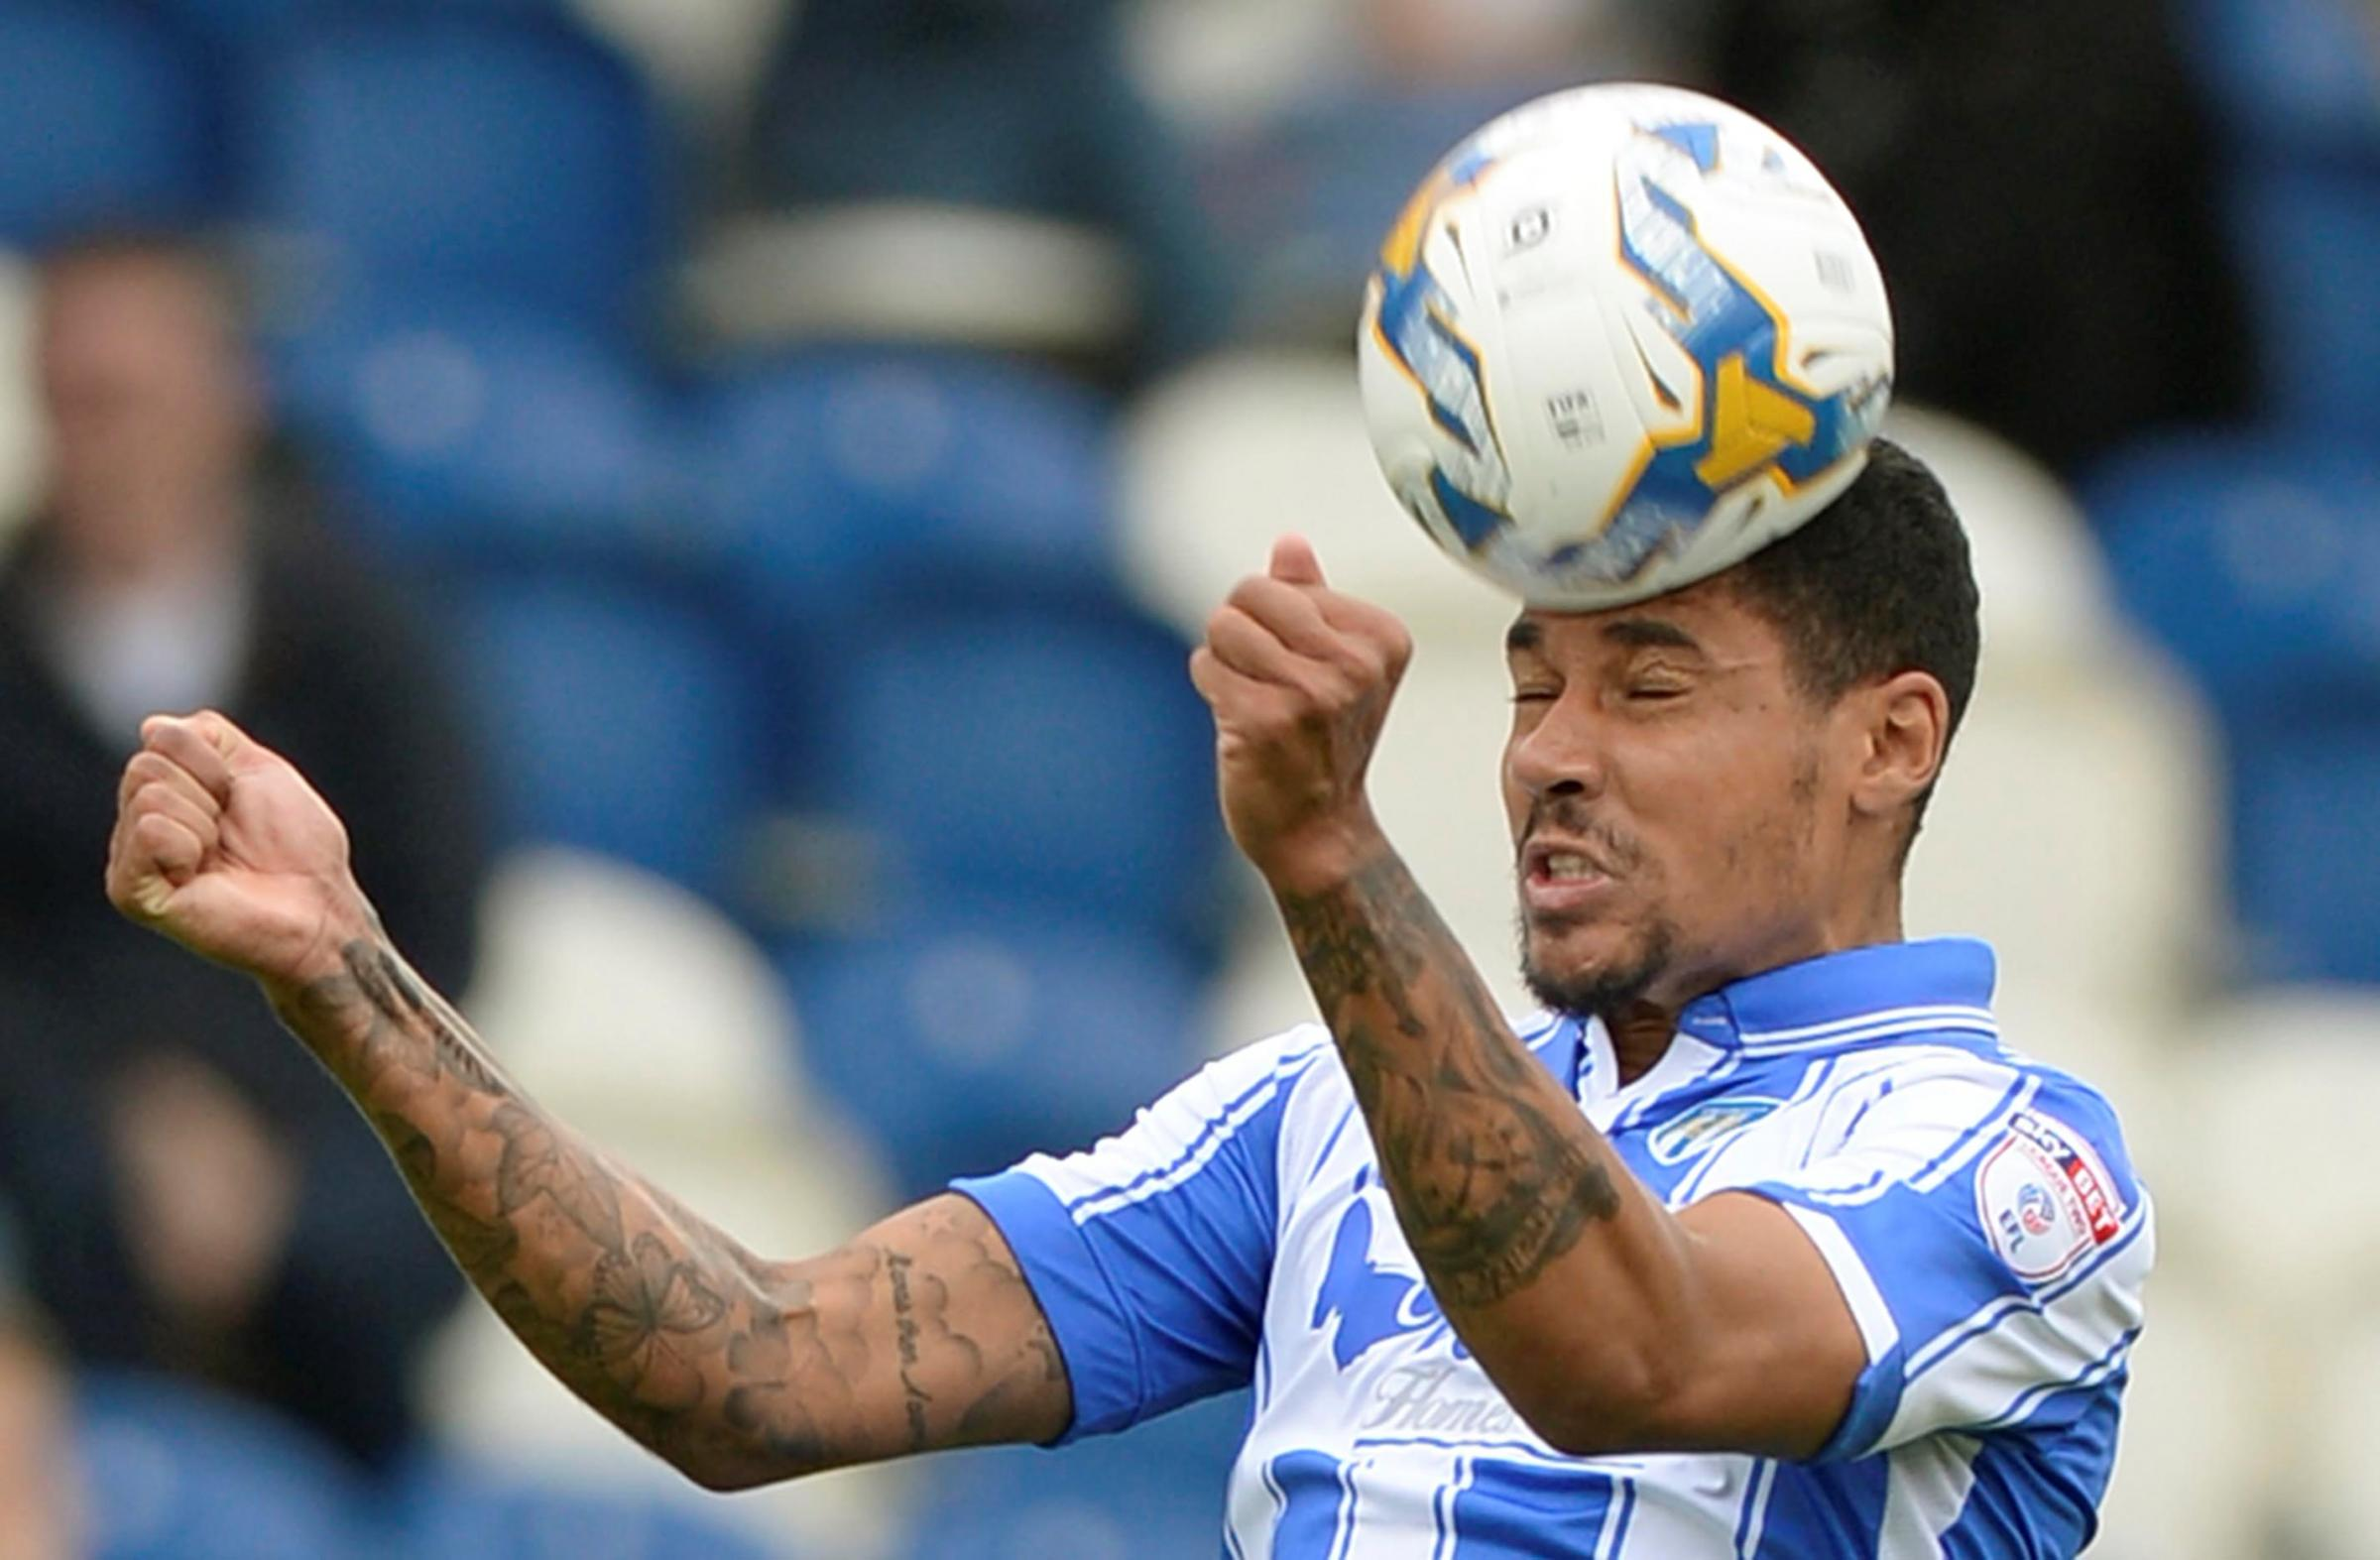 Heading in the right direction - Alex Wynter is hoping to help Colchester United beat Yeovil Town and secure a play-off place tomorrow. Picture: STEVE BRADING